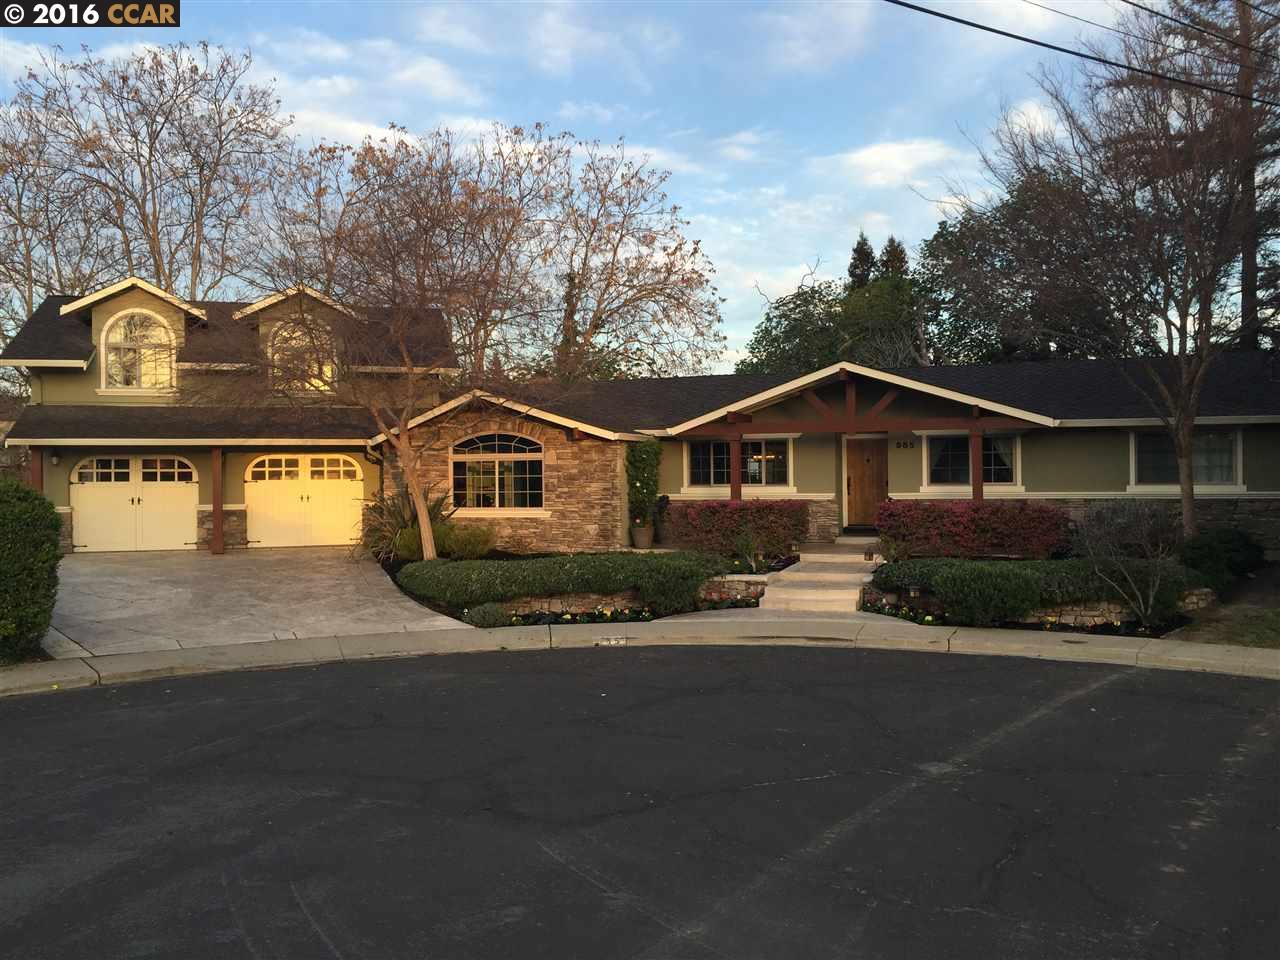 985 dar ct concord ca 94518 mls 40730672 coldwell banker